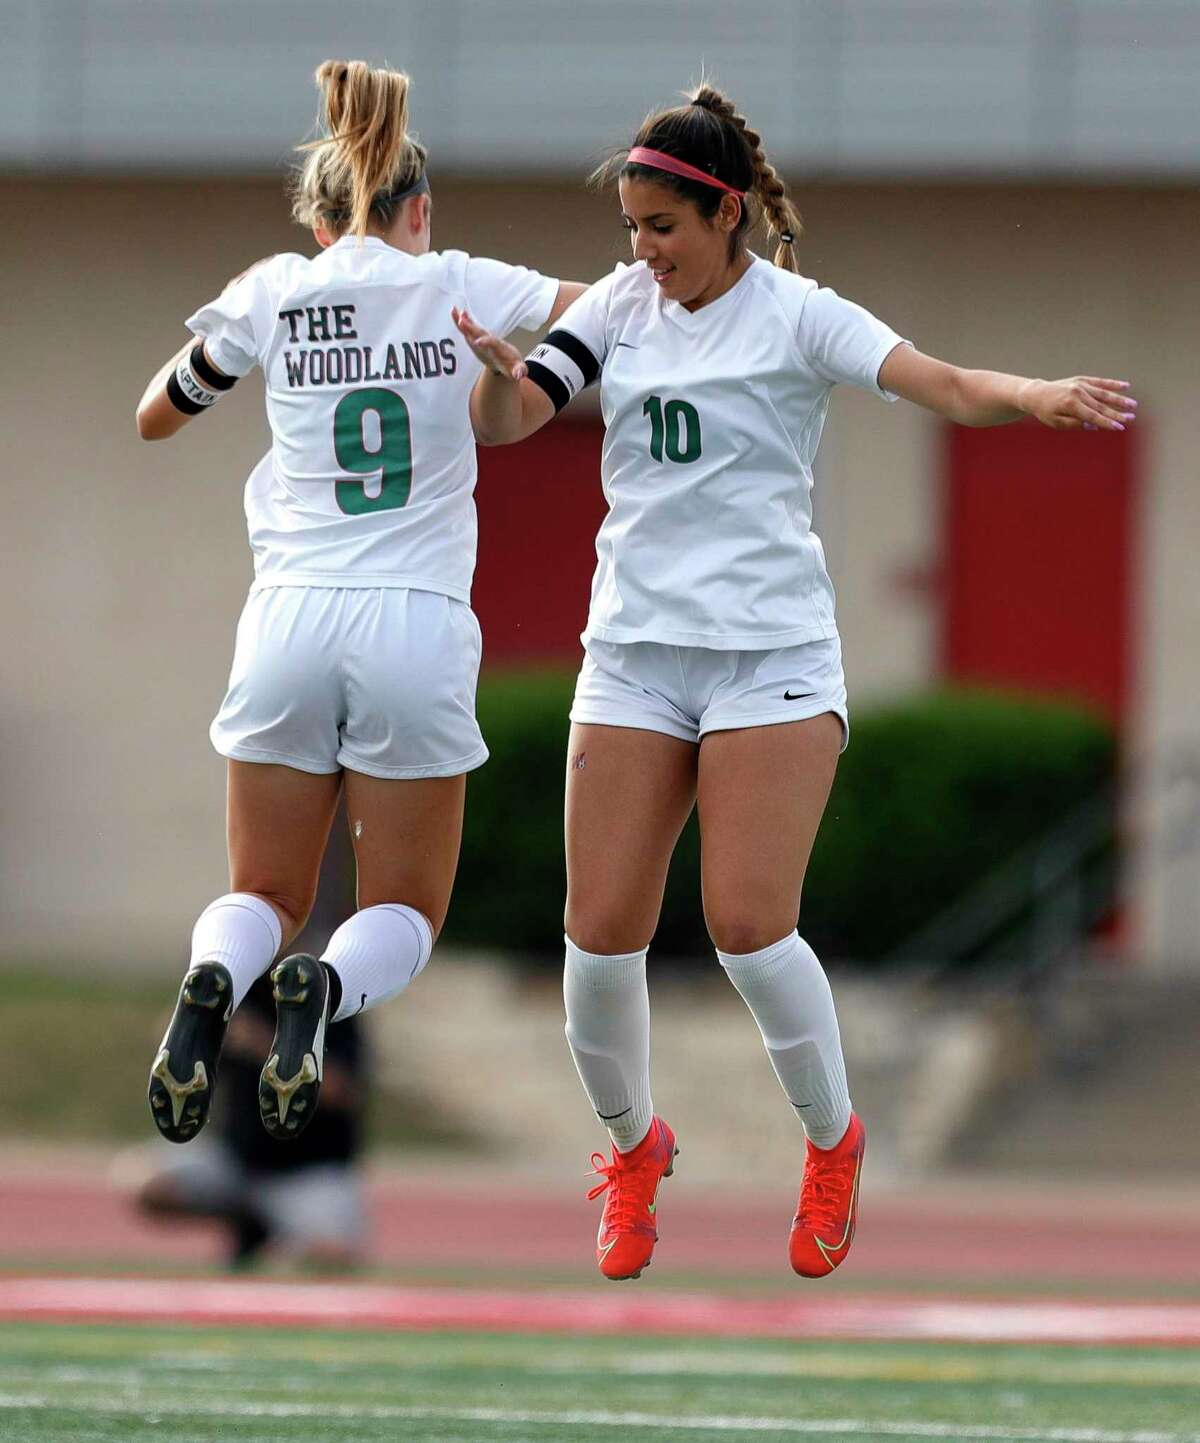 The Woodlands midfielder Ivana Palomo (10) gets defender Emily Bates (9) pumped before the start of the first period of a Class 6A girls UIL state semifinal match at Belton High School, Tuesday, April 13, 2021, in Belton.